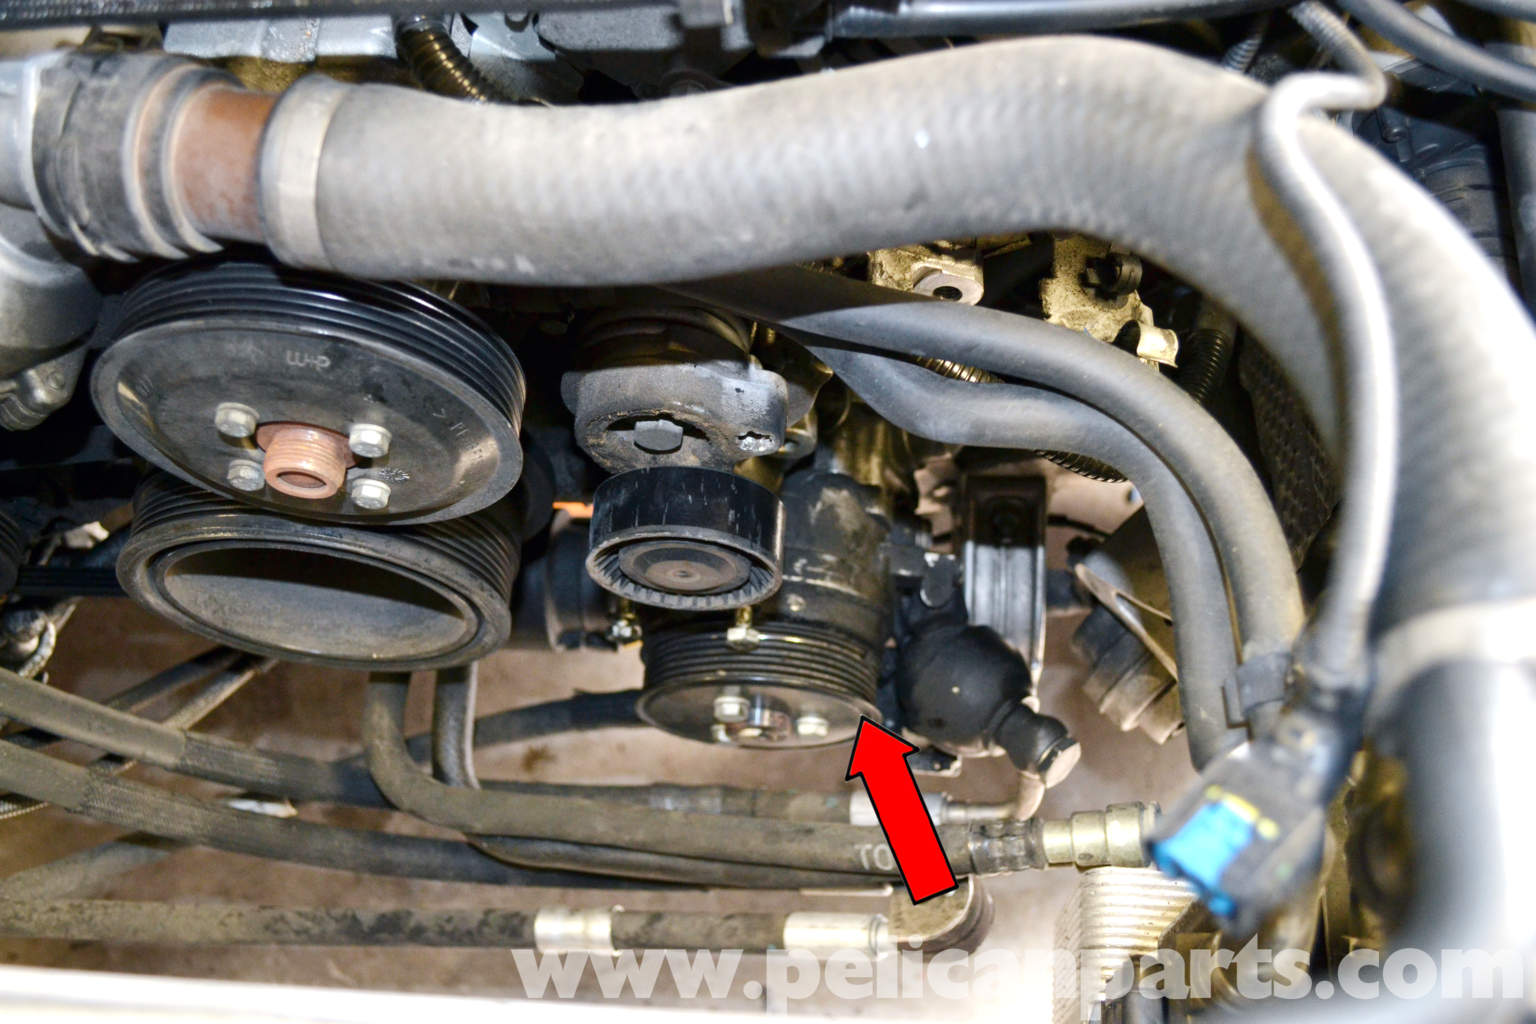 Bmw 750li engine oil leak videos bmw free engine image for Bmw x5 motor oil